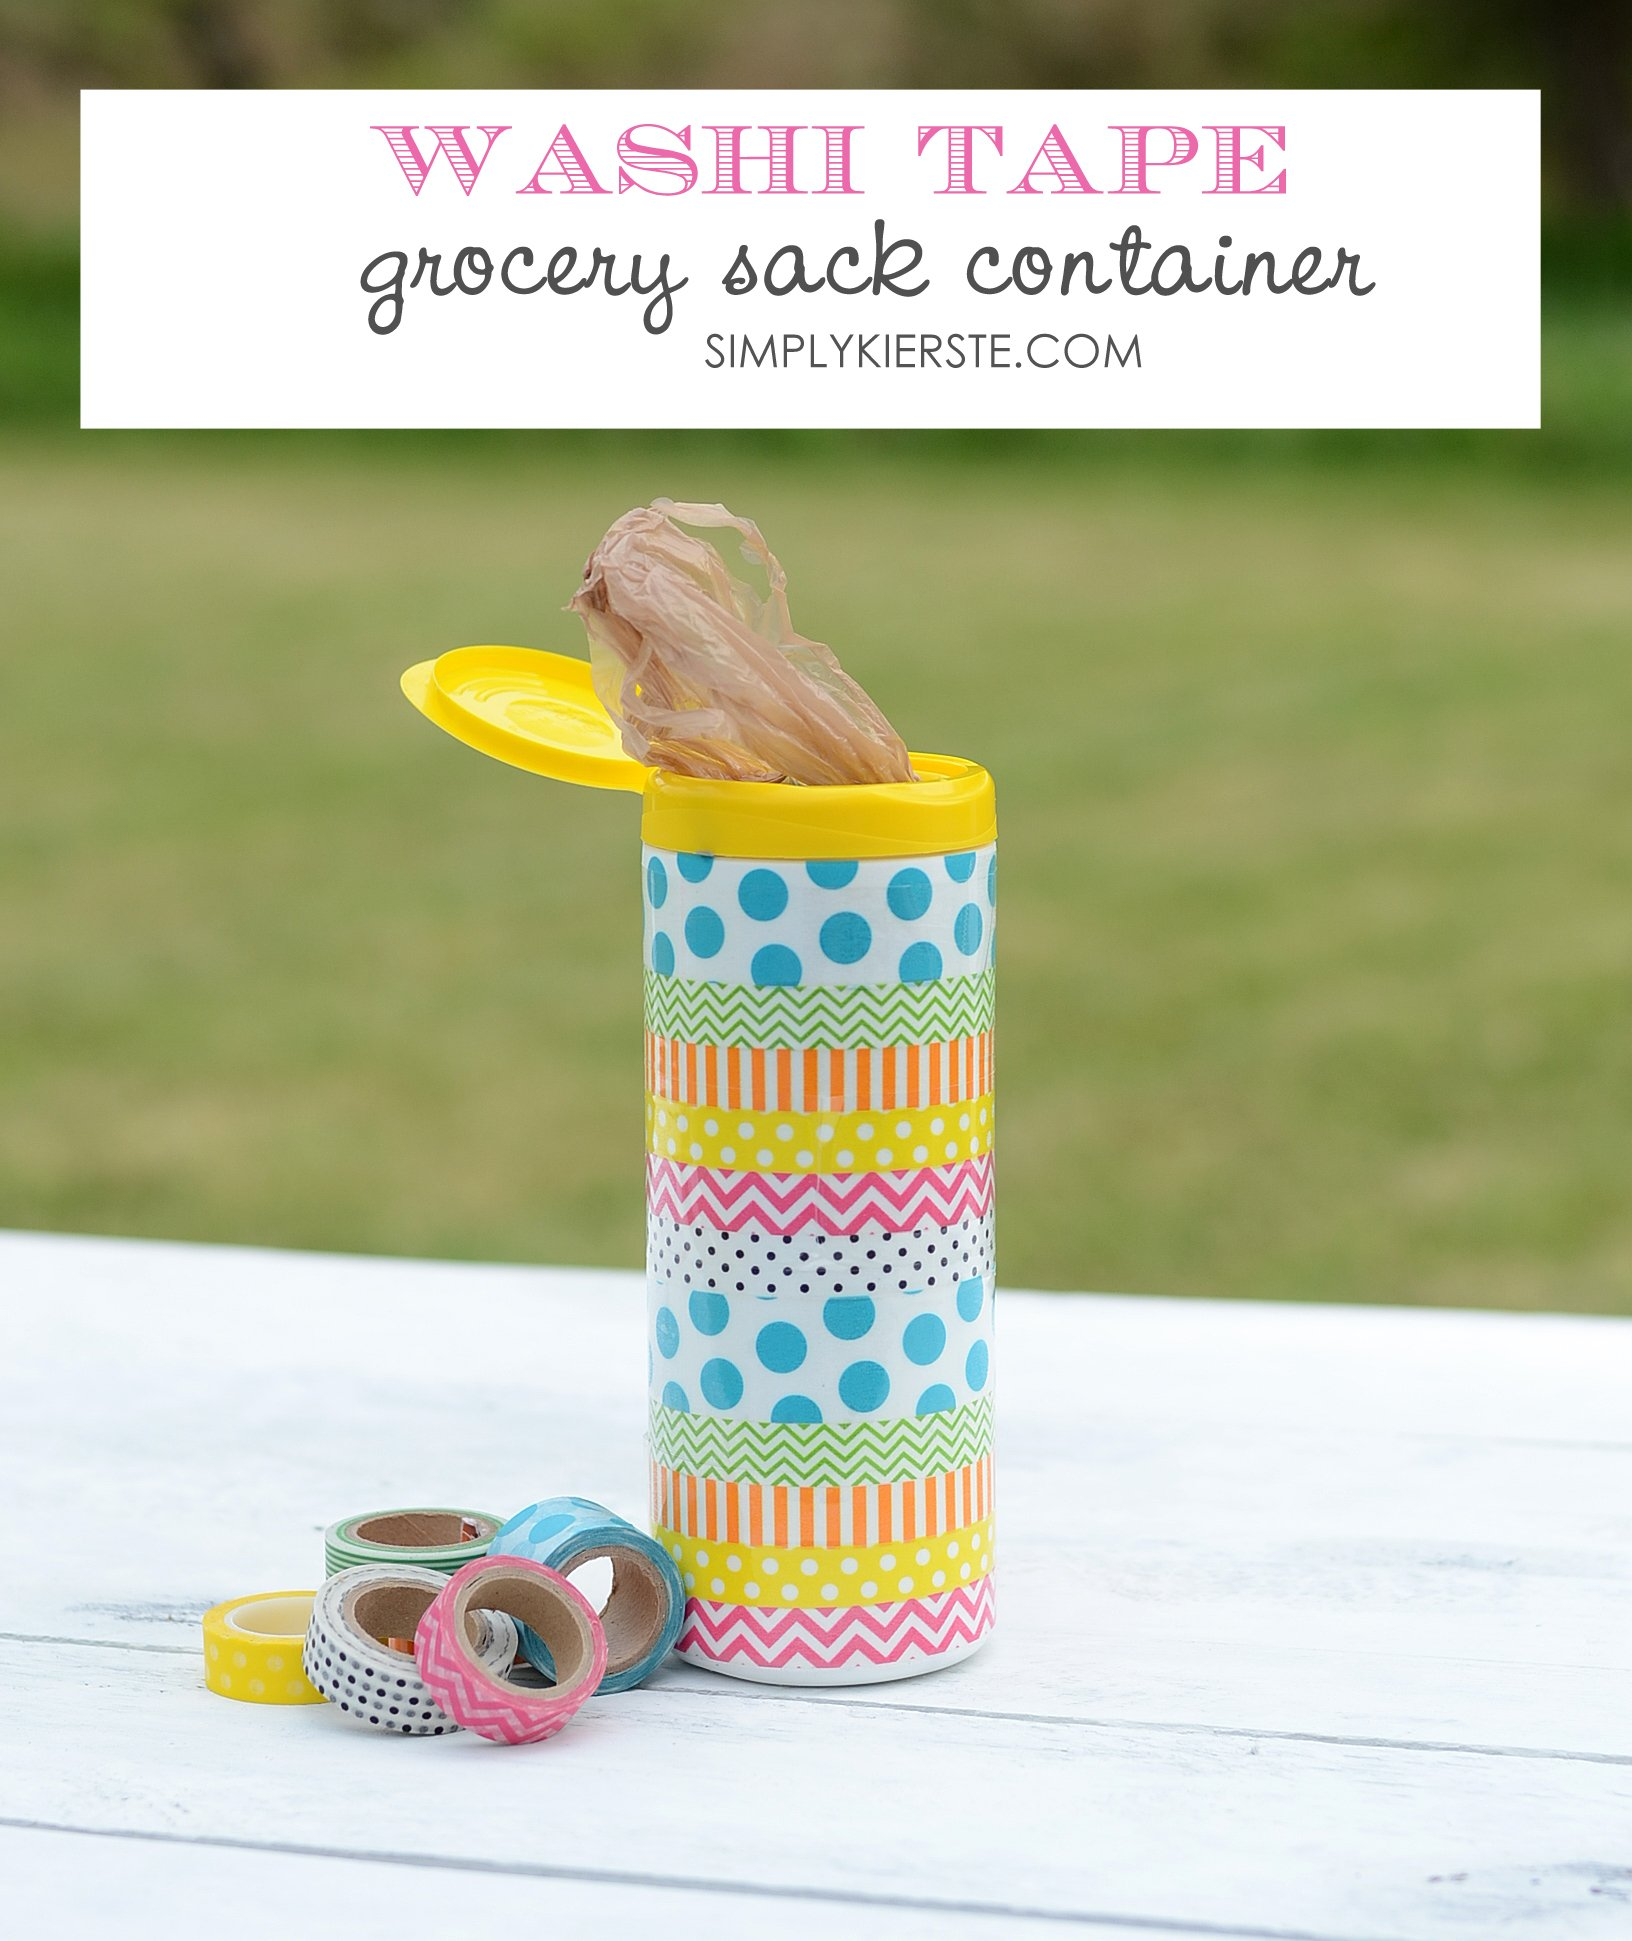 Washi tape grocery bag containers